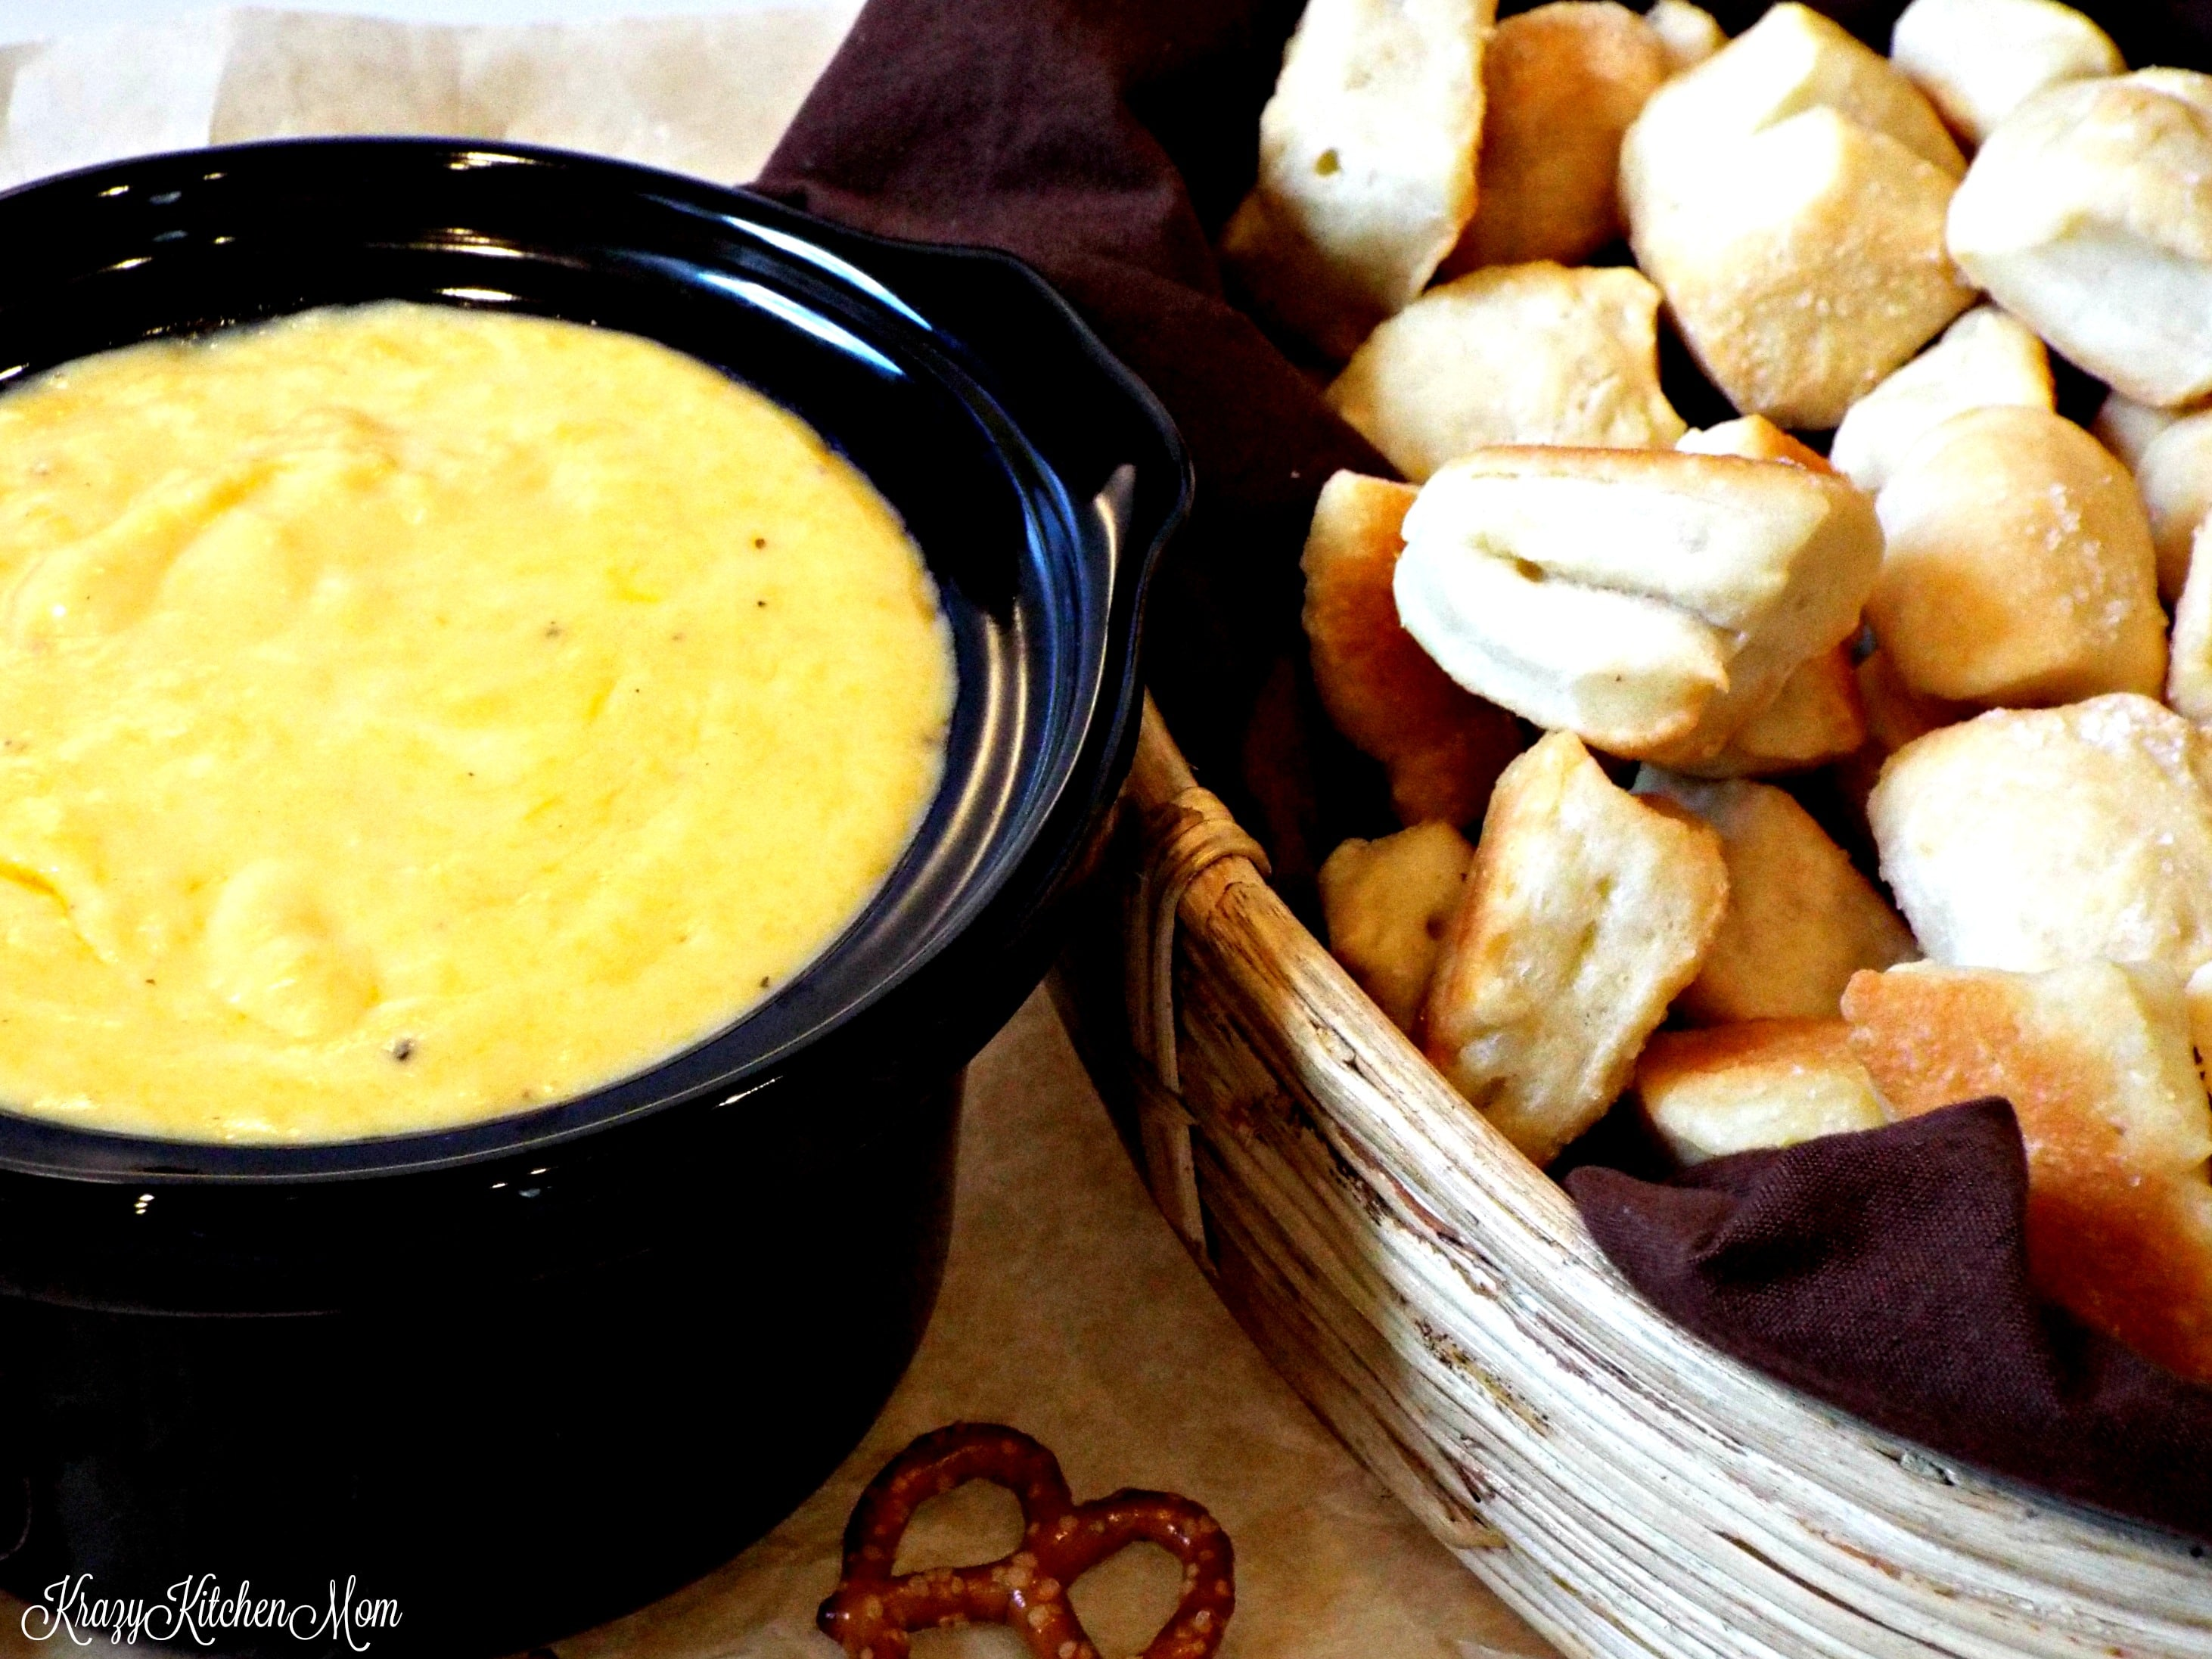 Beer Cheese Dip | Krazy Kitchen Mom